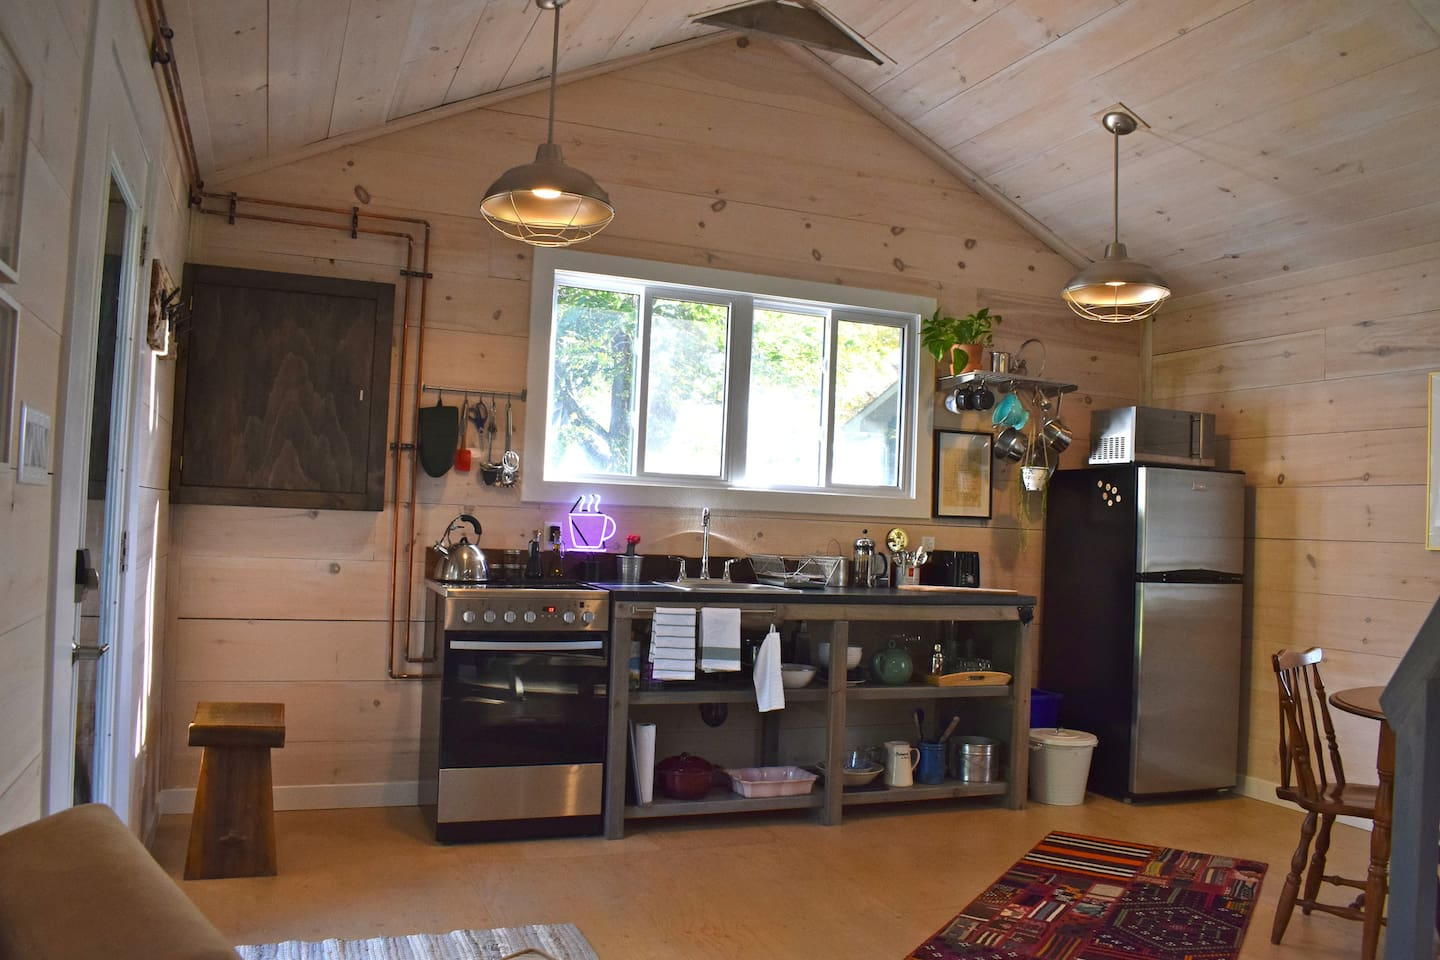 Studio style custom kitchen with brand new stainless steel oven and stove top, fridge, and microwave.  We provide all the cutest ware for you to prepare your favourite meals and snacks with notes on where to buy fresh local fare from the county.